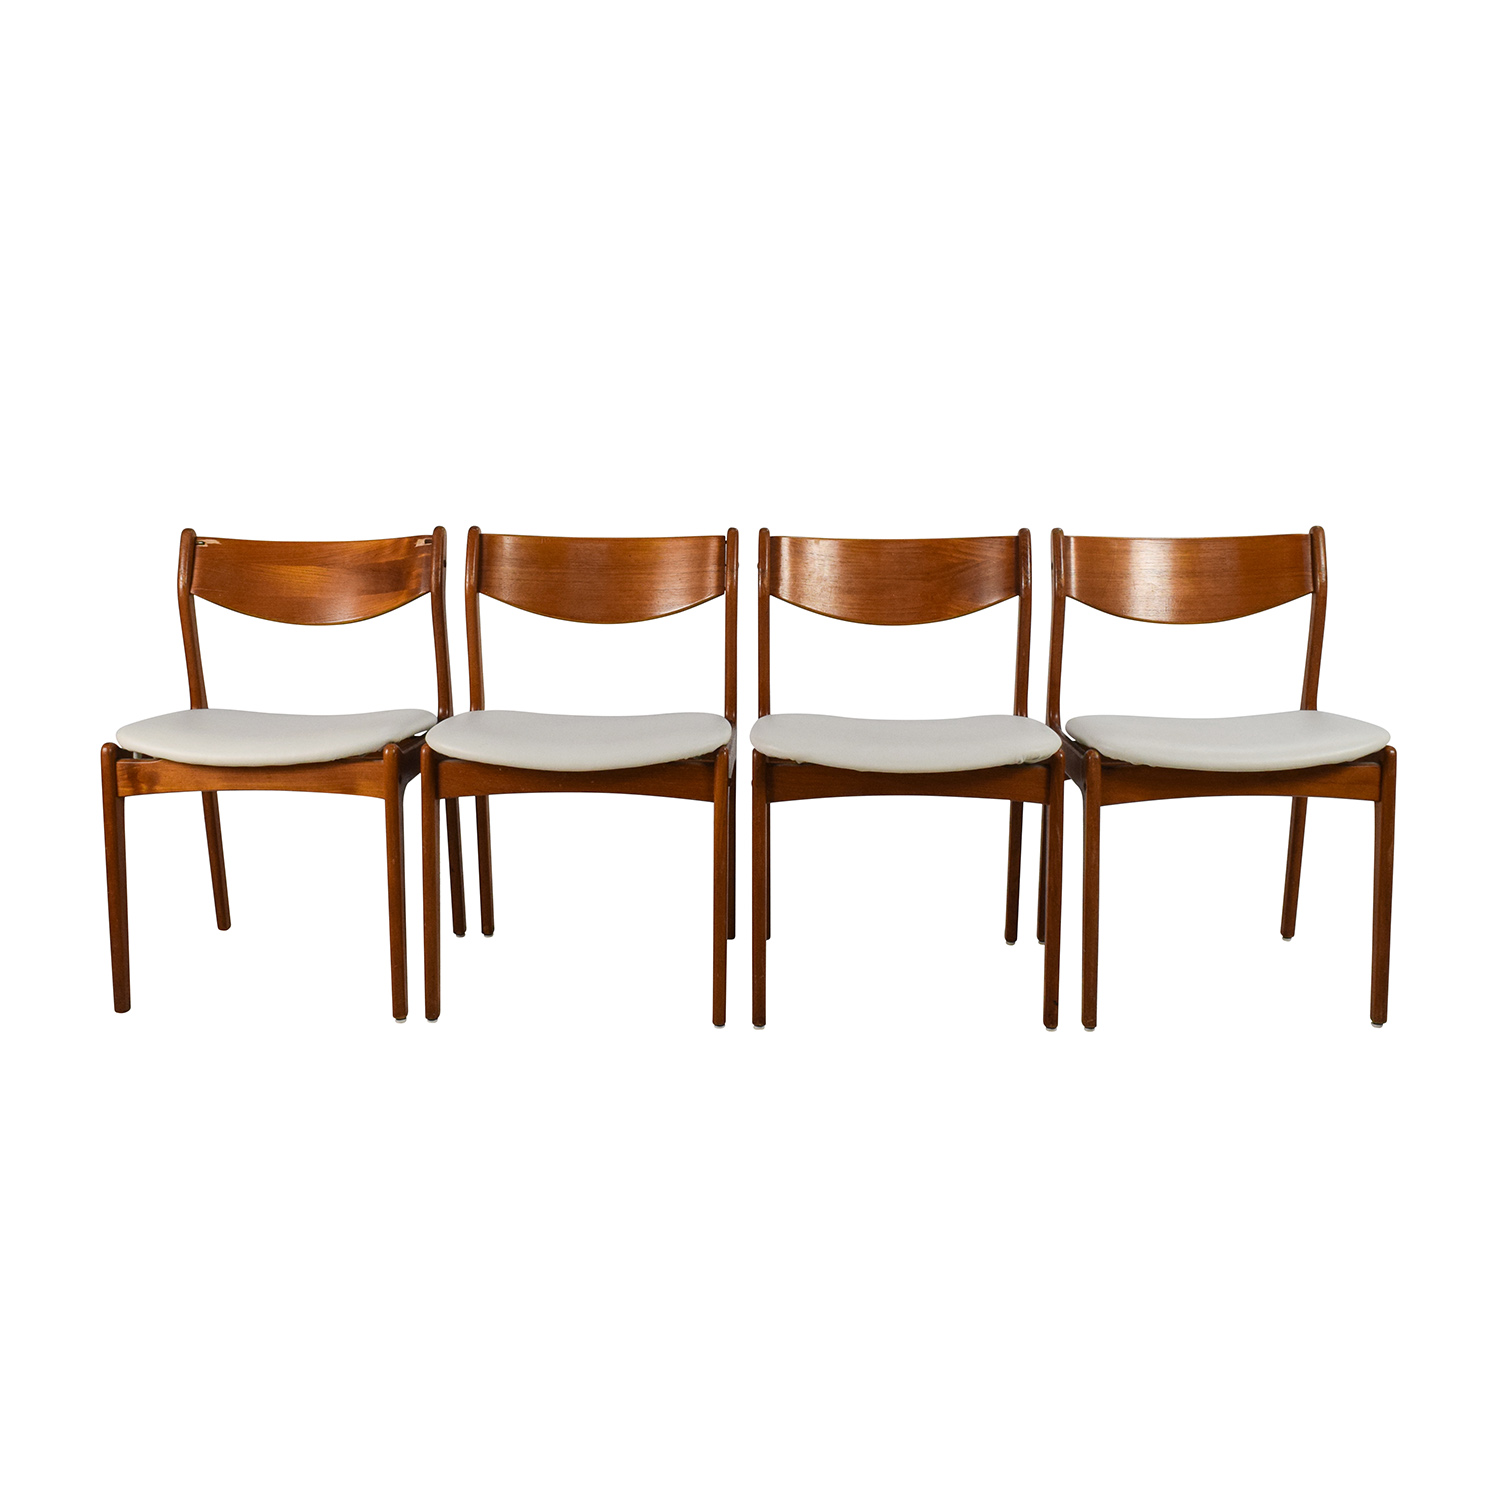 Farso Stolefabrik Farso Stolefabrik Danish Teak Chair Set Dining Chairs